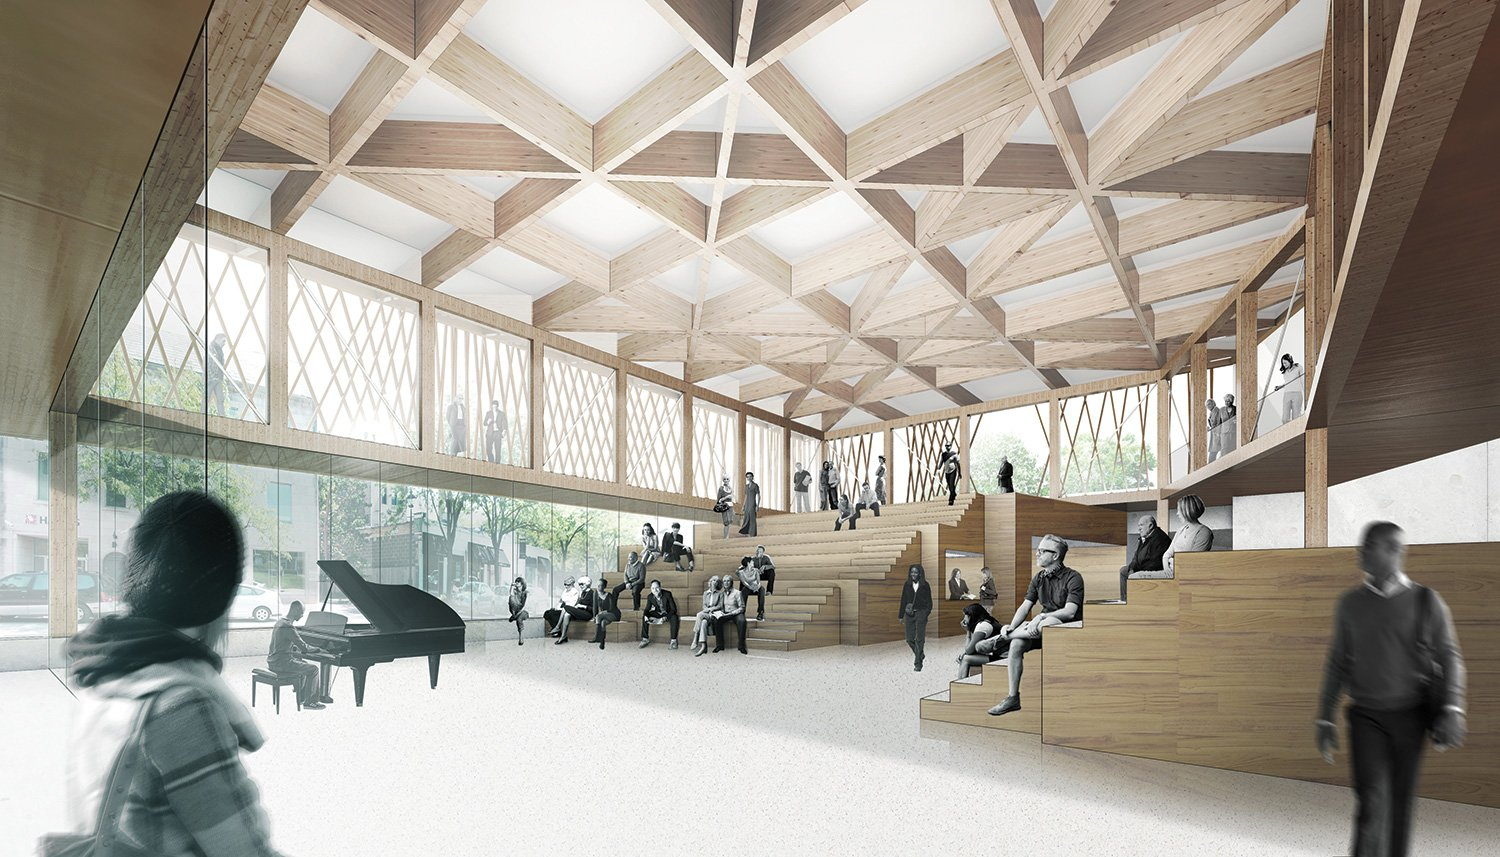 The lobby is designed to accommodate the spoken word, providing opportunities for informal performances, events, and educational programs. Acoustic wood ceiling panels and theatrical lights further its abi }